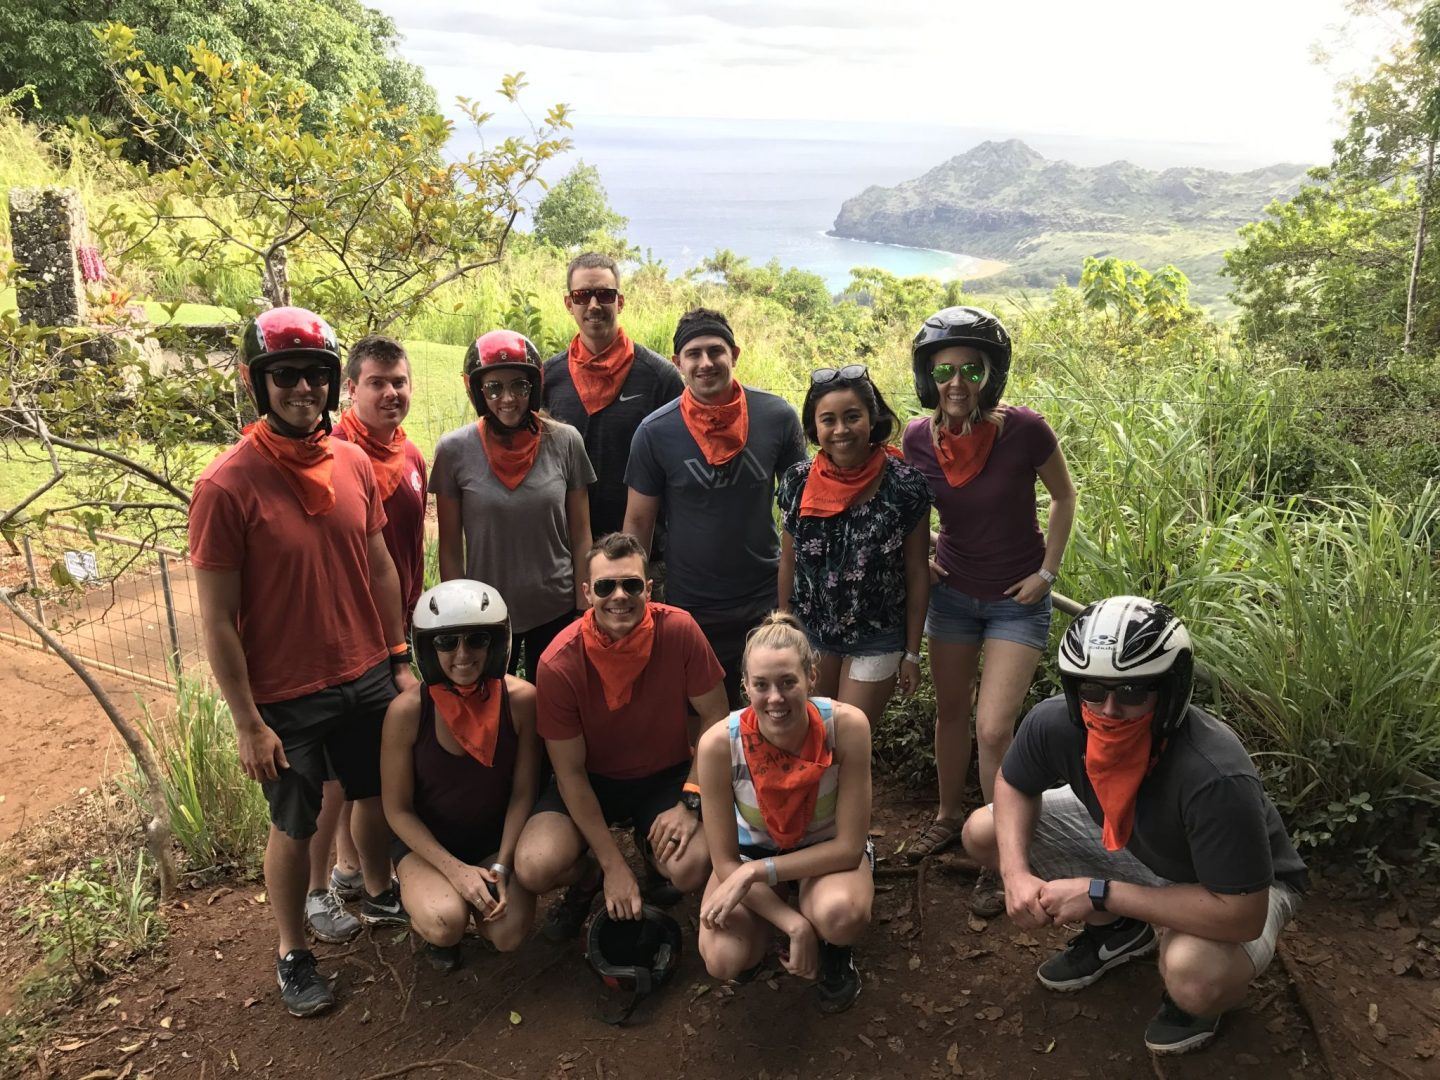 Kipu Ranch Adventures - Kipu Ranch Review - Things to do in Kauai